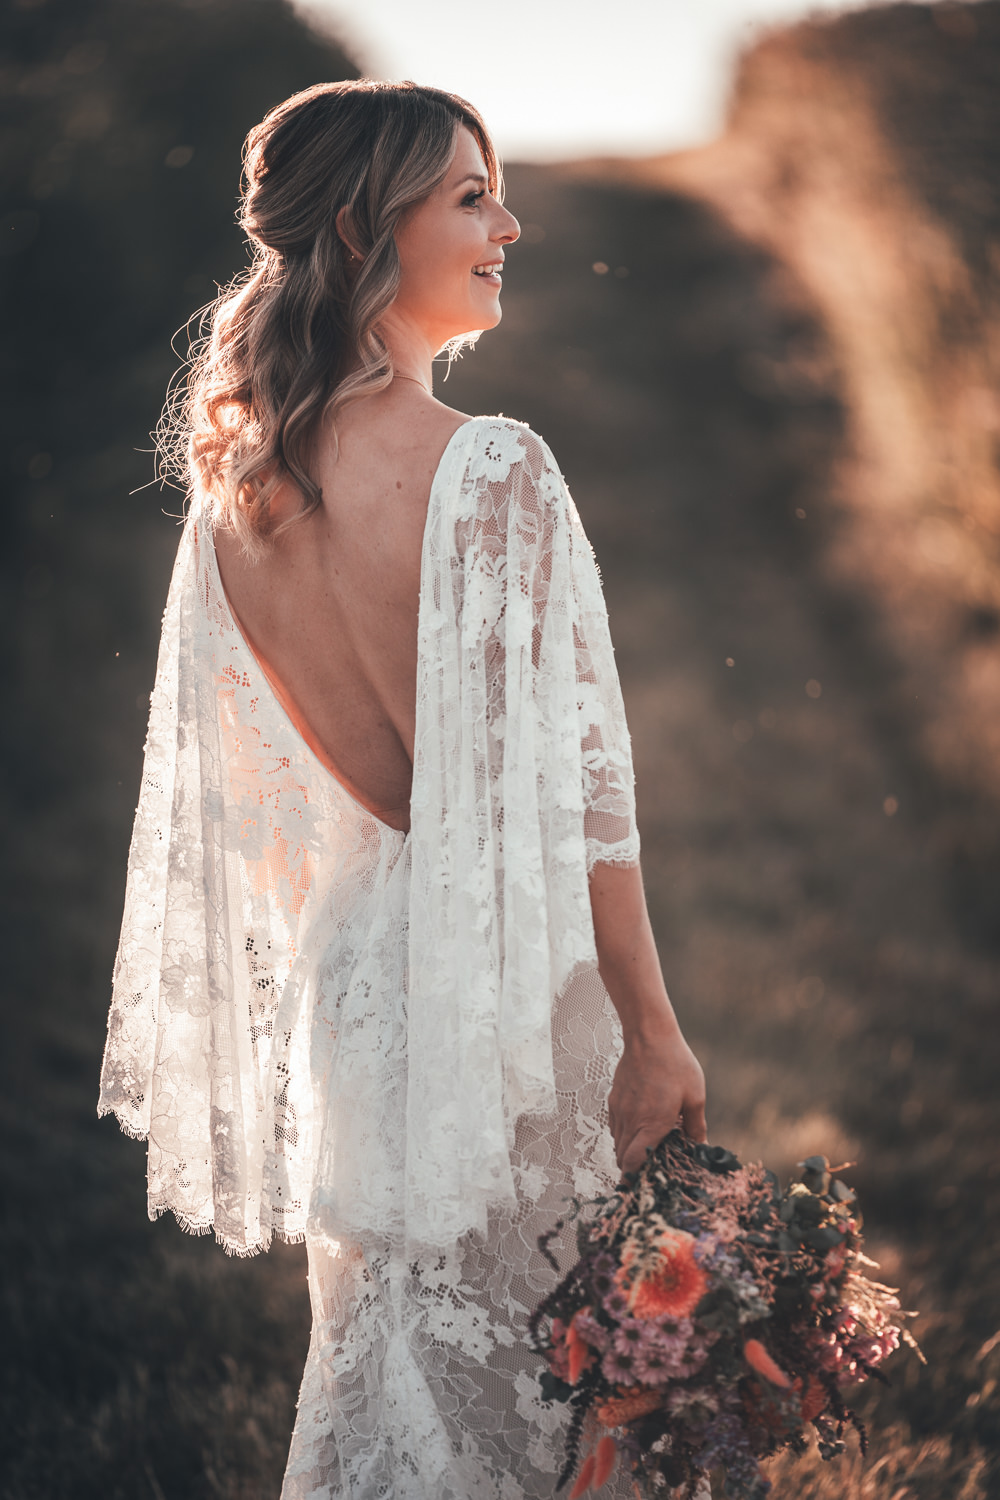 Dress Gown Bride Bridal Lace Sleeves Lillian West Boho Bohemian Poppy Field Wedding NT Creatives